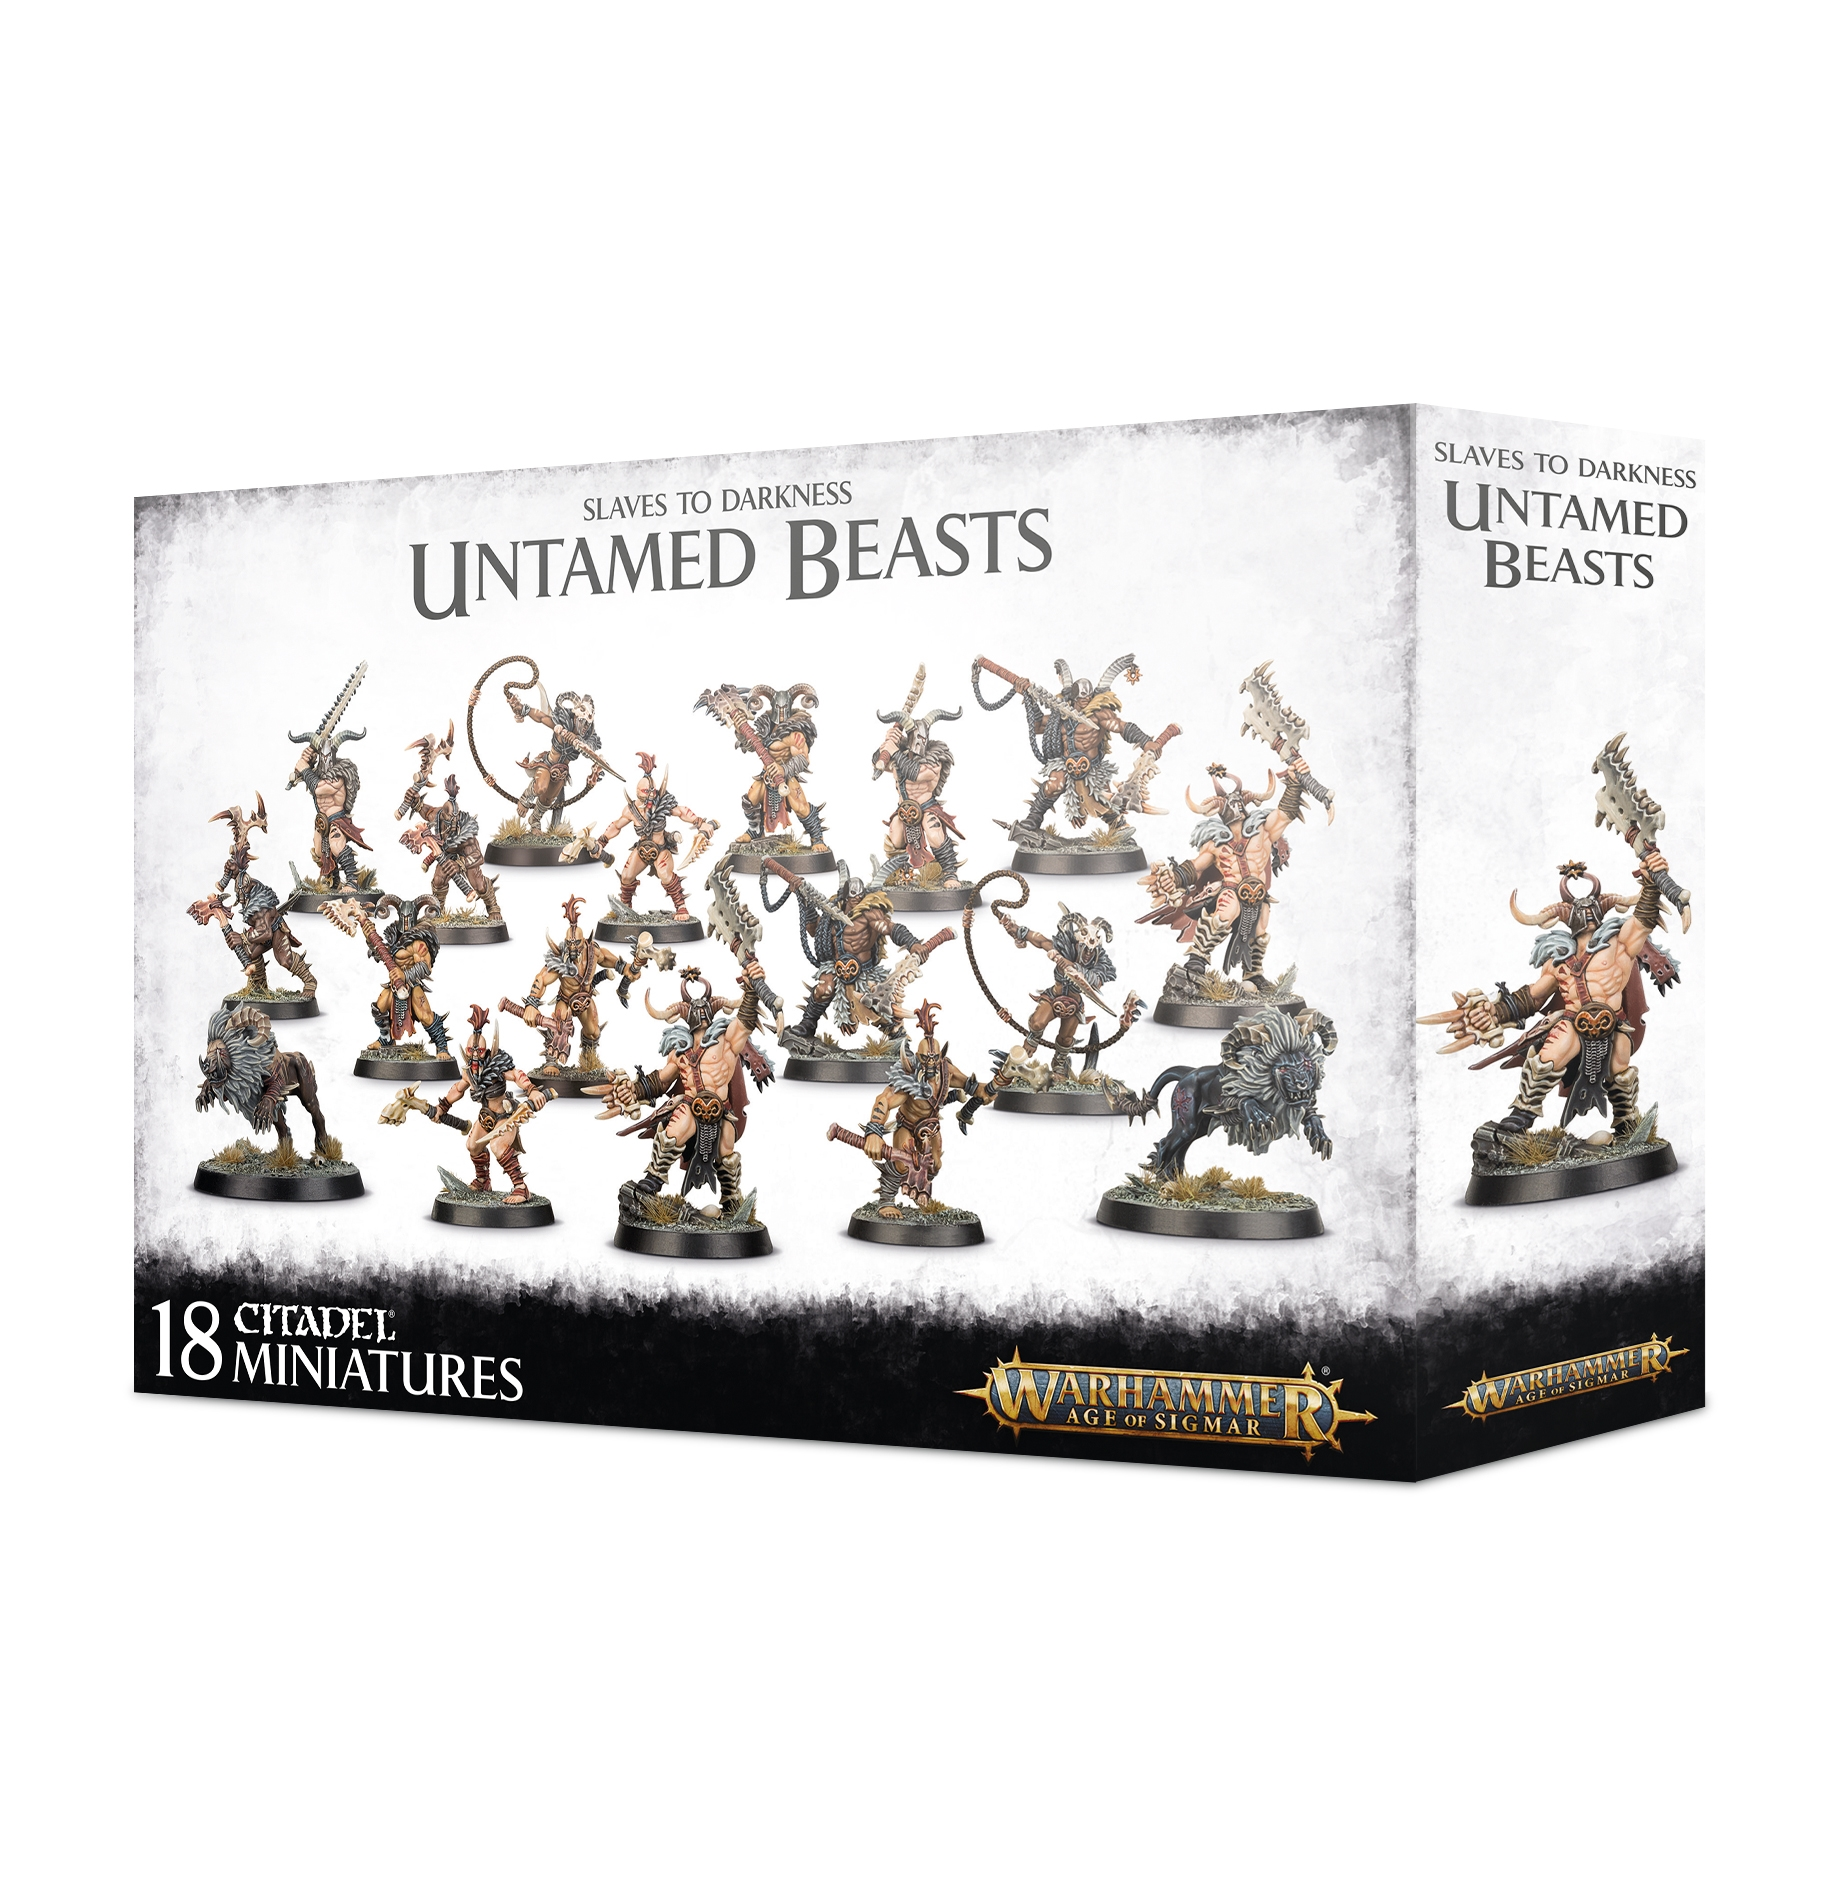 Warhammer Age of Sigmar: Slaves to Darkness: Untamed Beasts